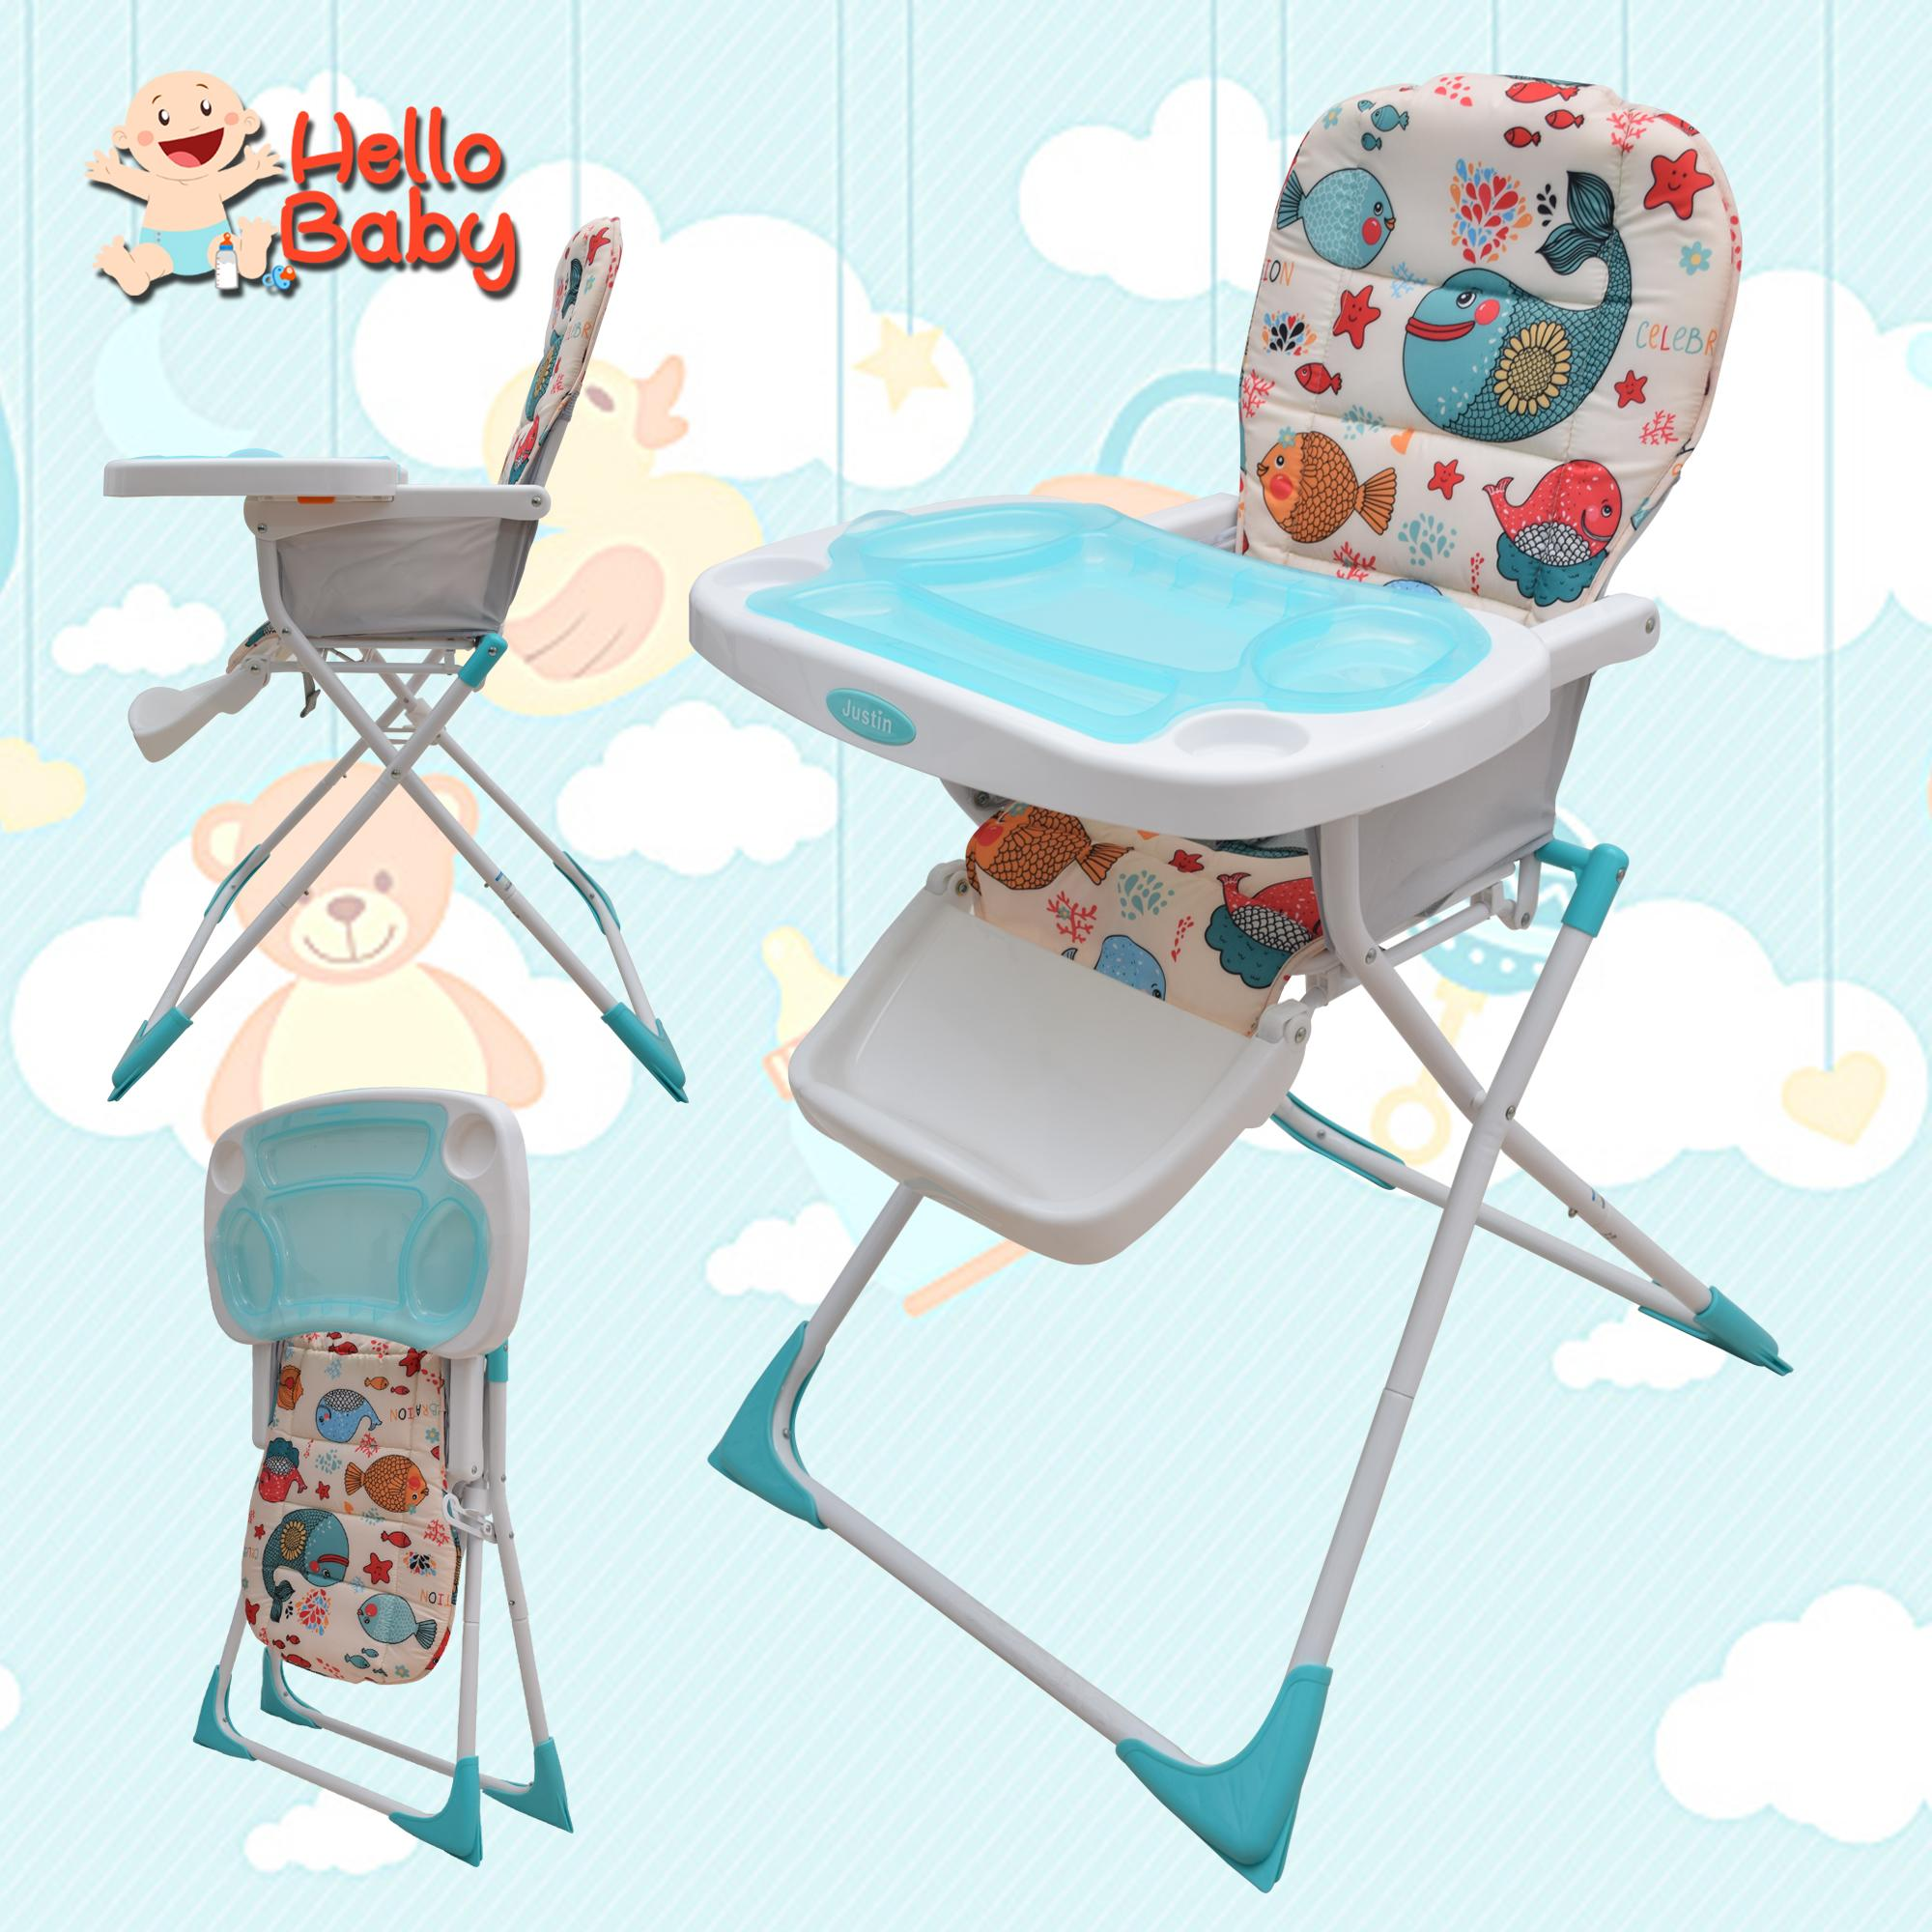 Hello Baby JUSTIN Baby High Chair Baby Feeding Chair Booster